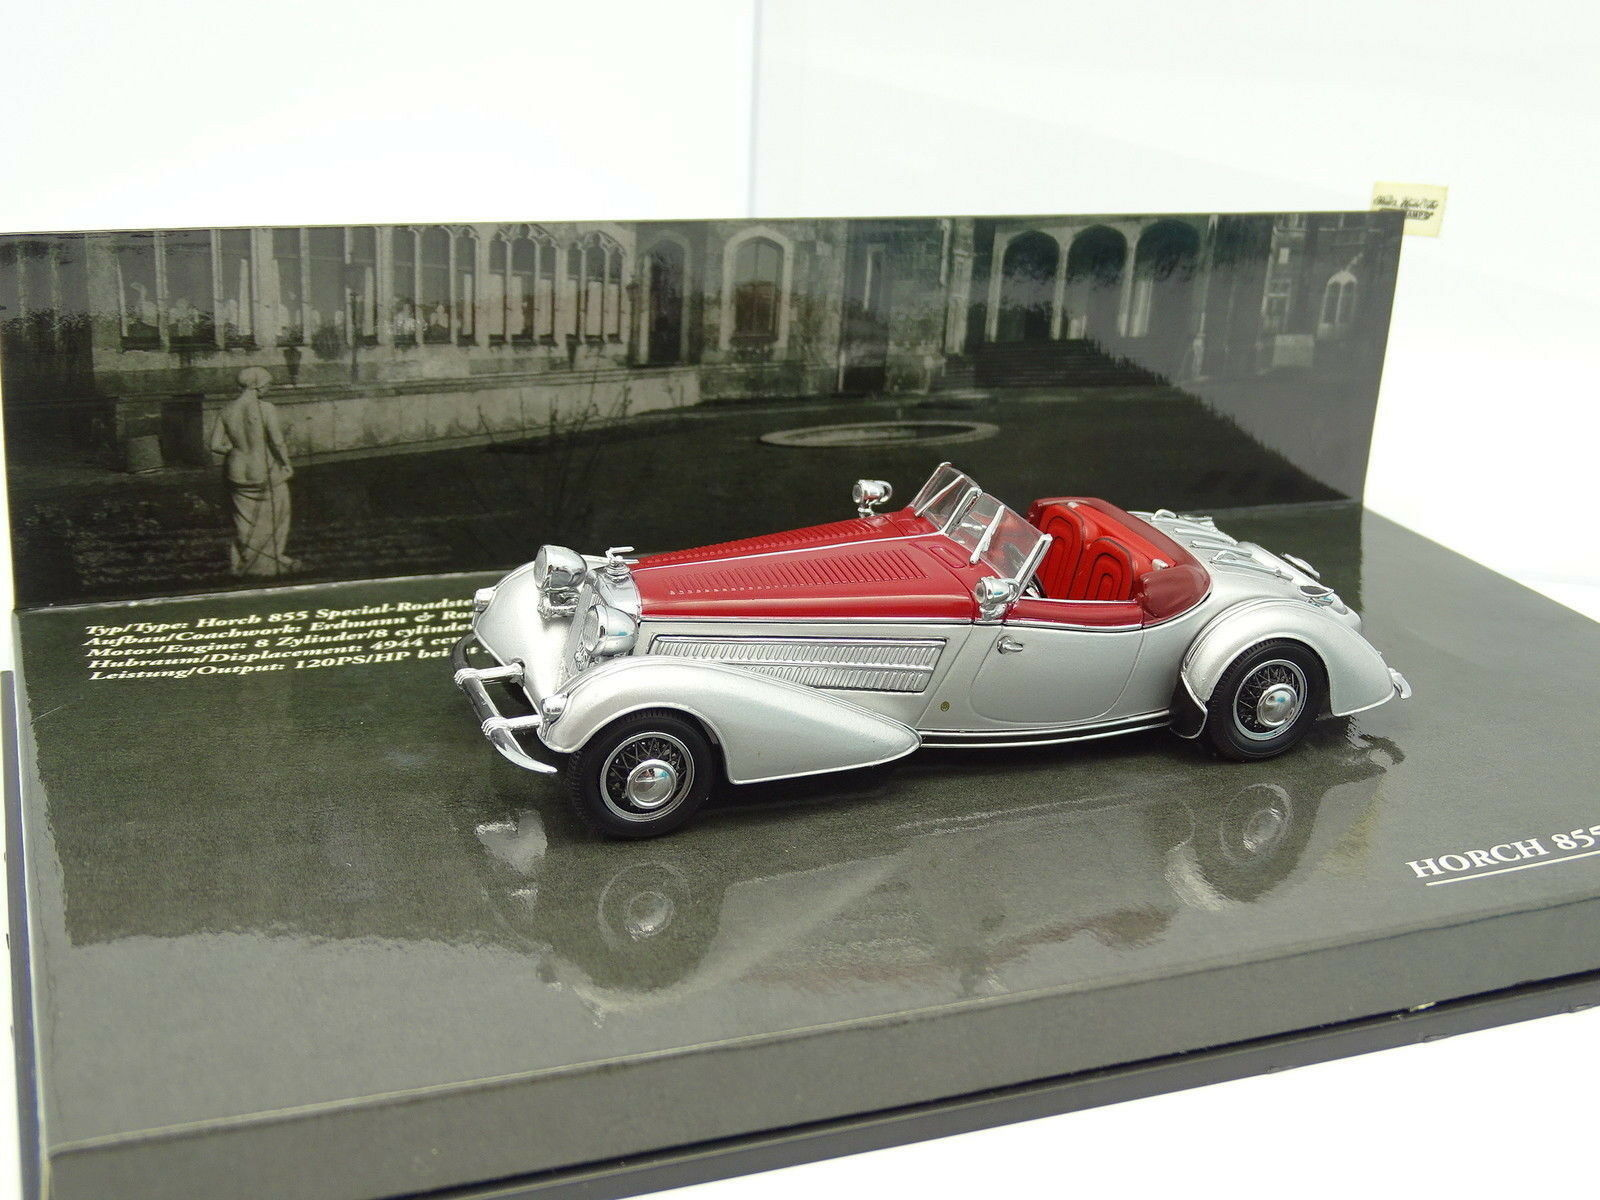 Minichamps 1 43 - Horch 855 Special Roadster Grey Grey Grey and Red c24f41